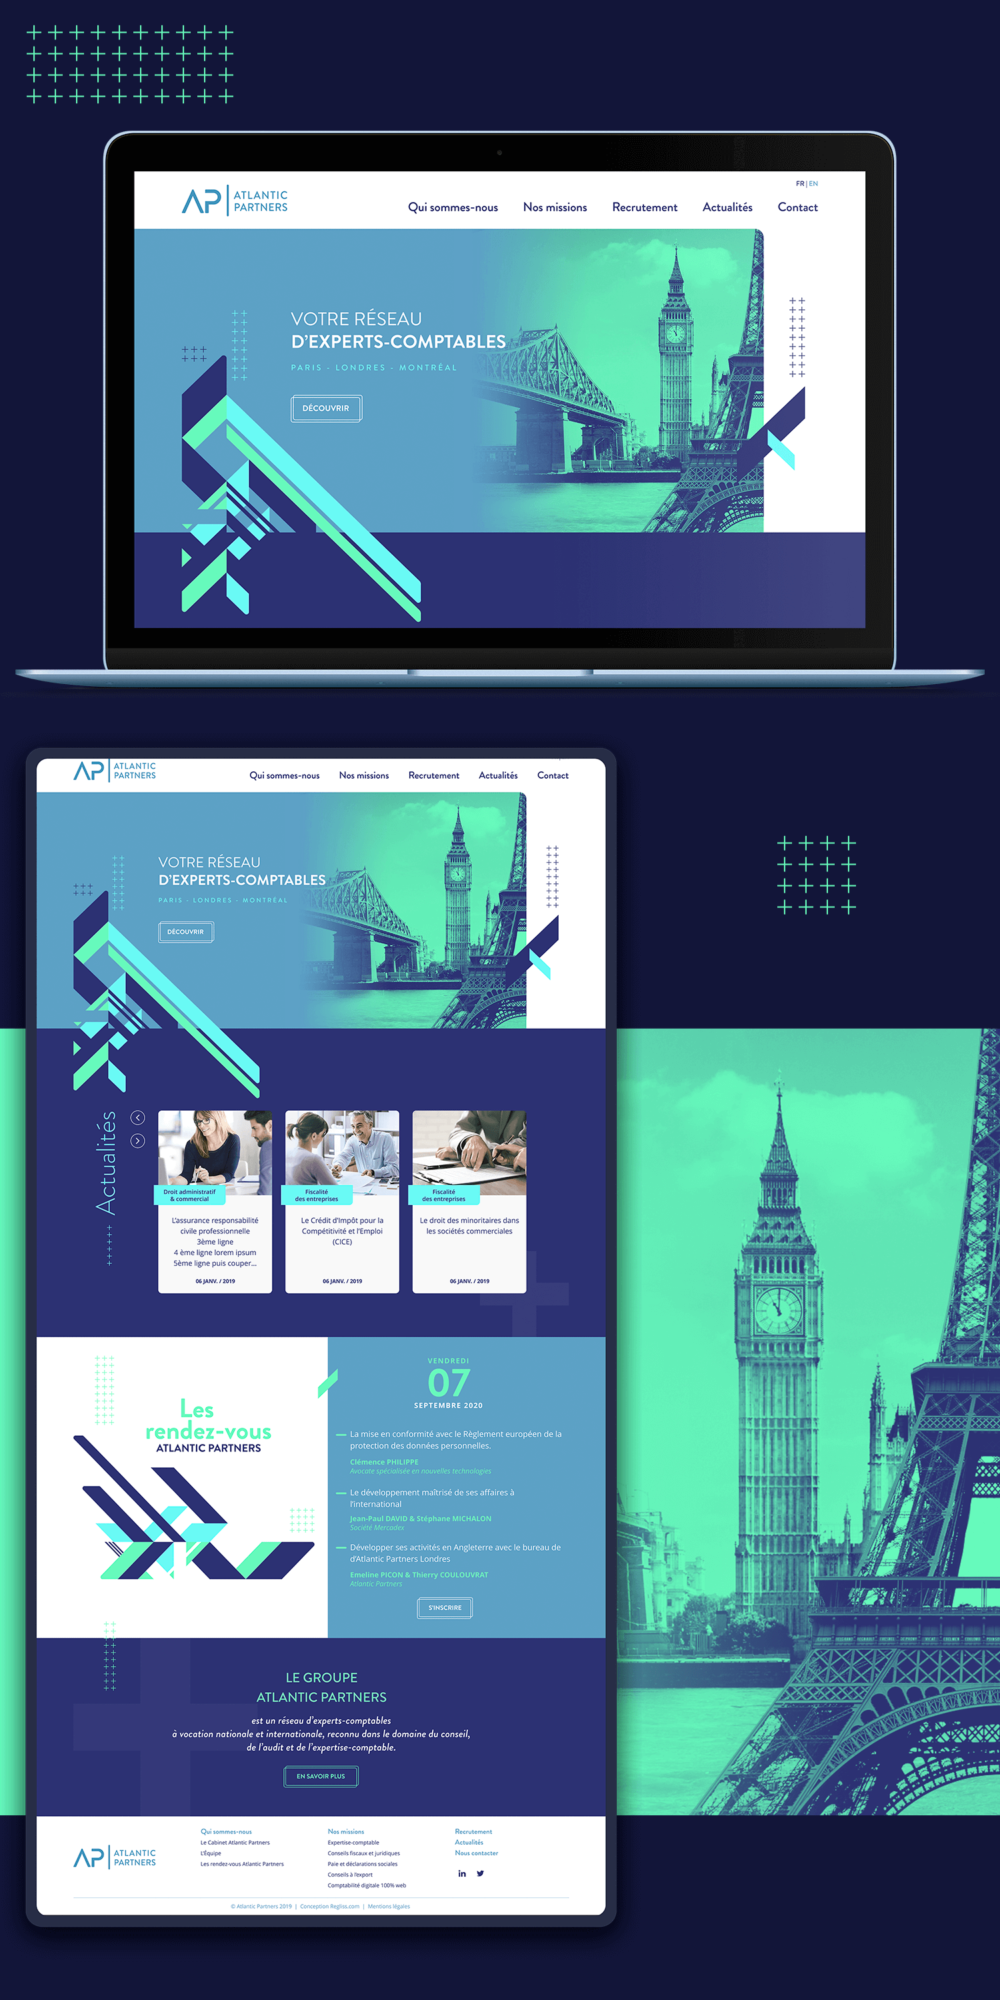 Design du site internet Atlantic Partners